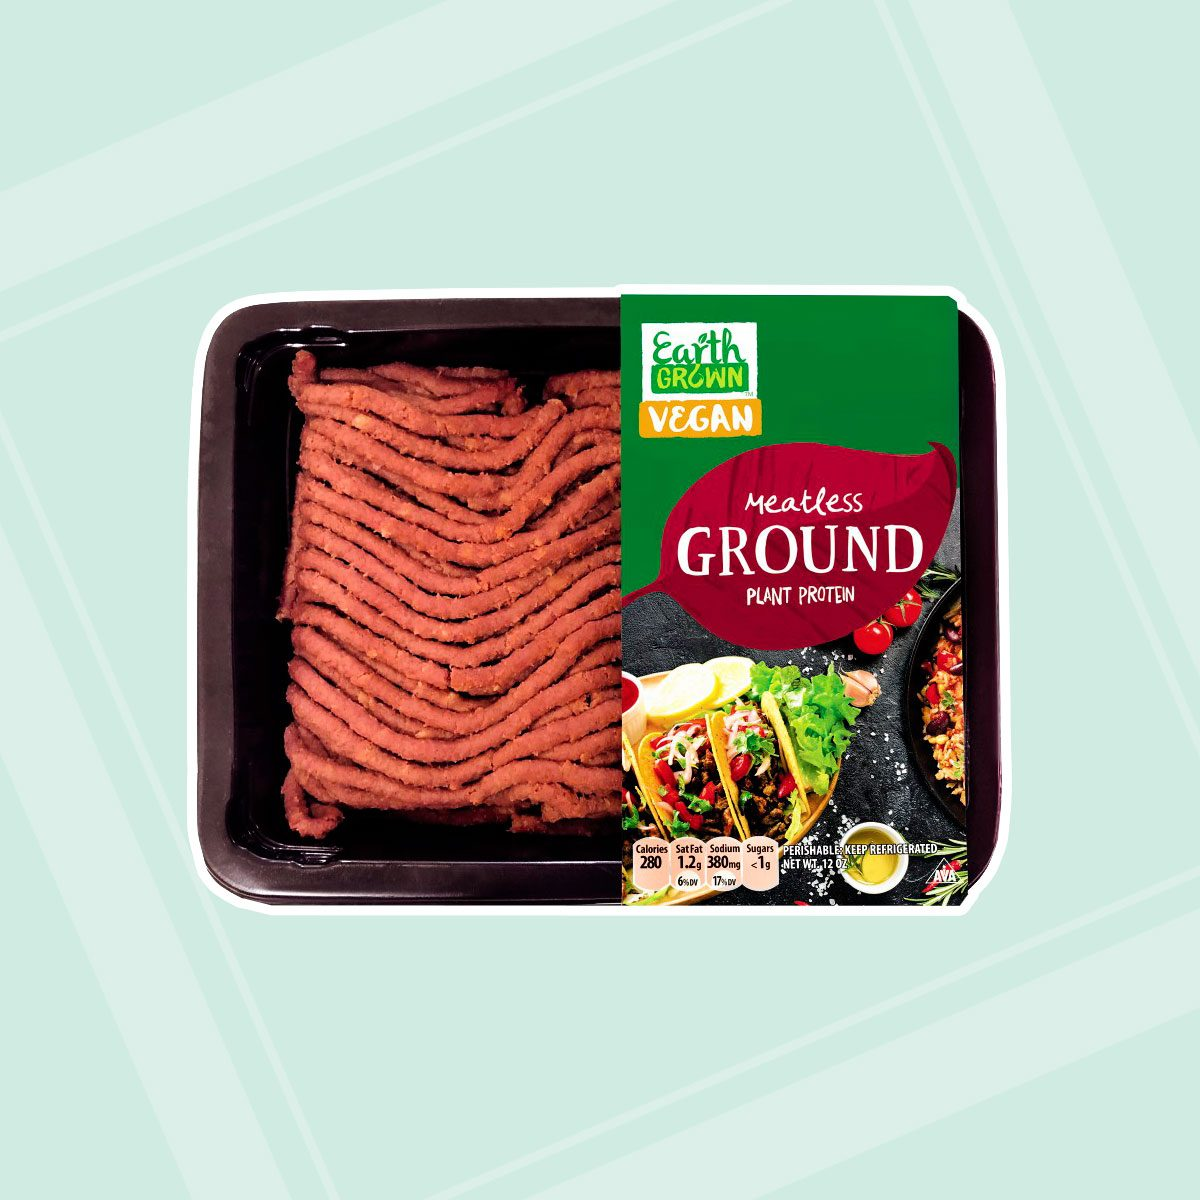 Meatless Ground Plant Protein